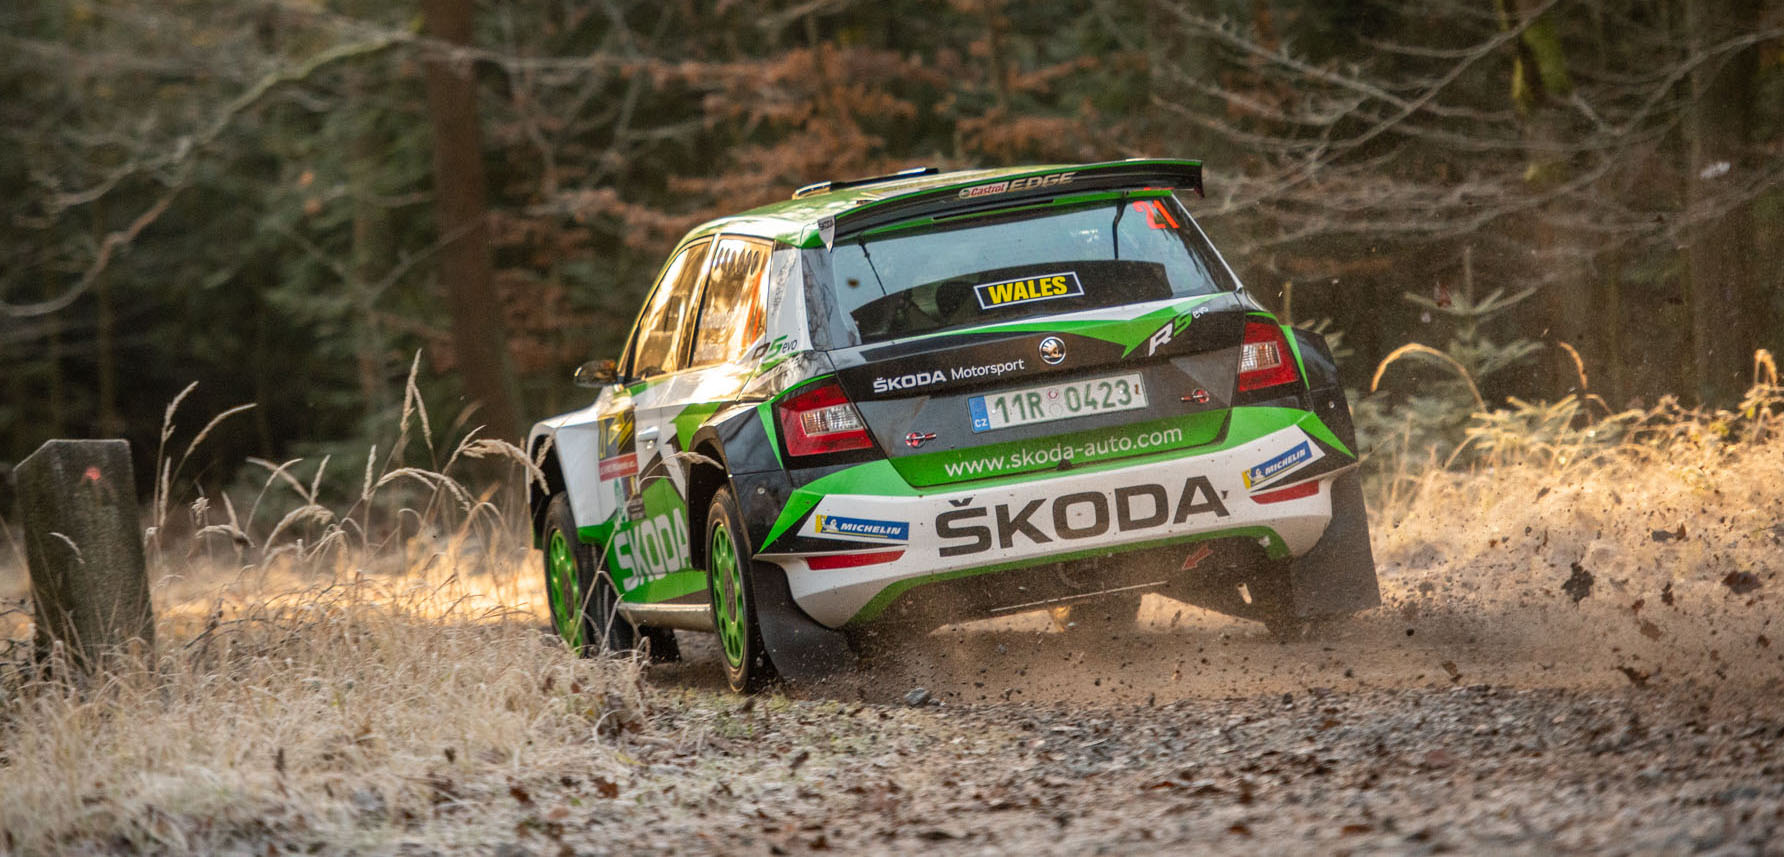 ŠKODA FABIA Rally2 evo: New Season, New Name